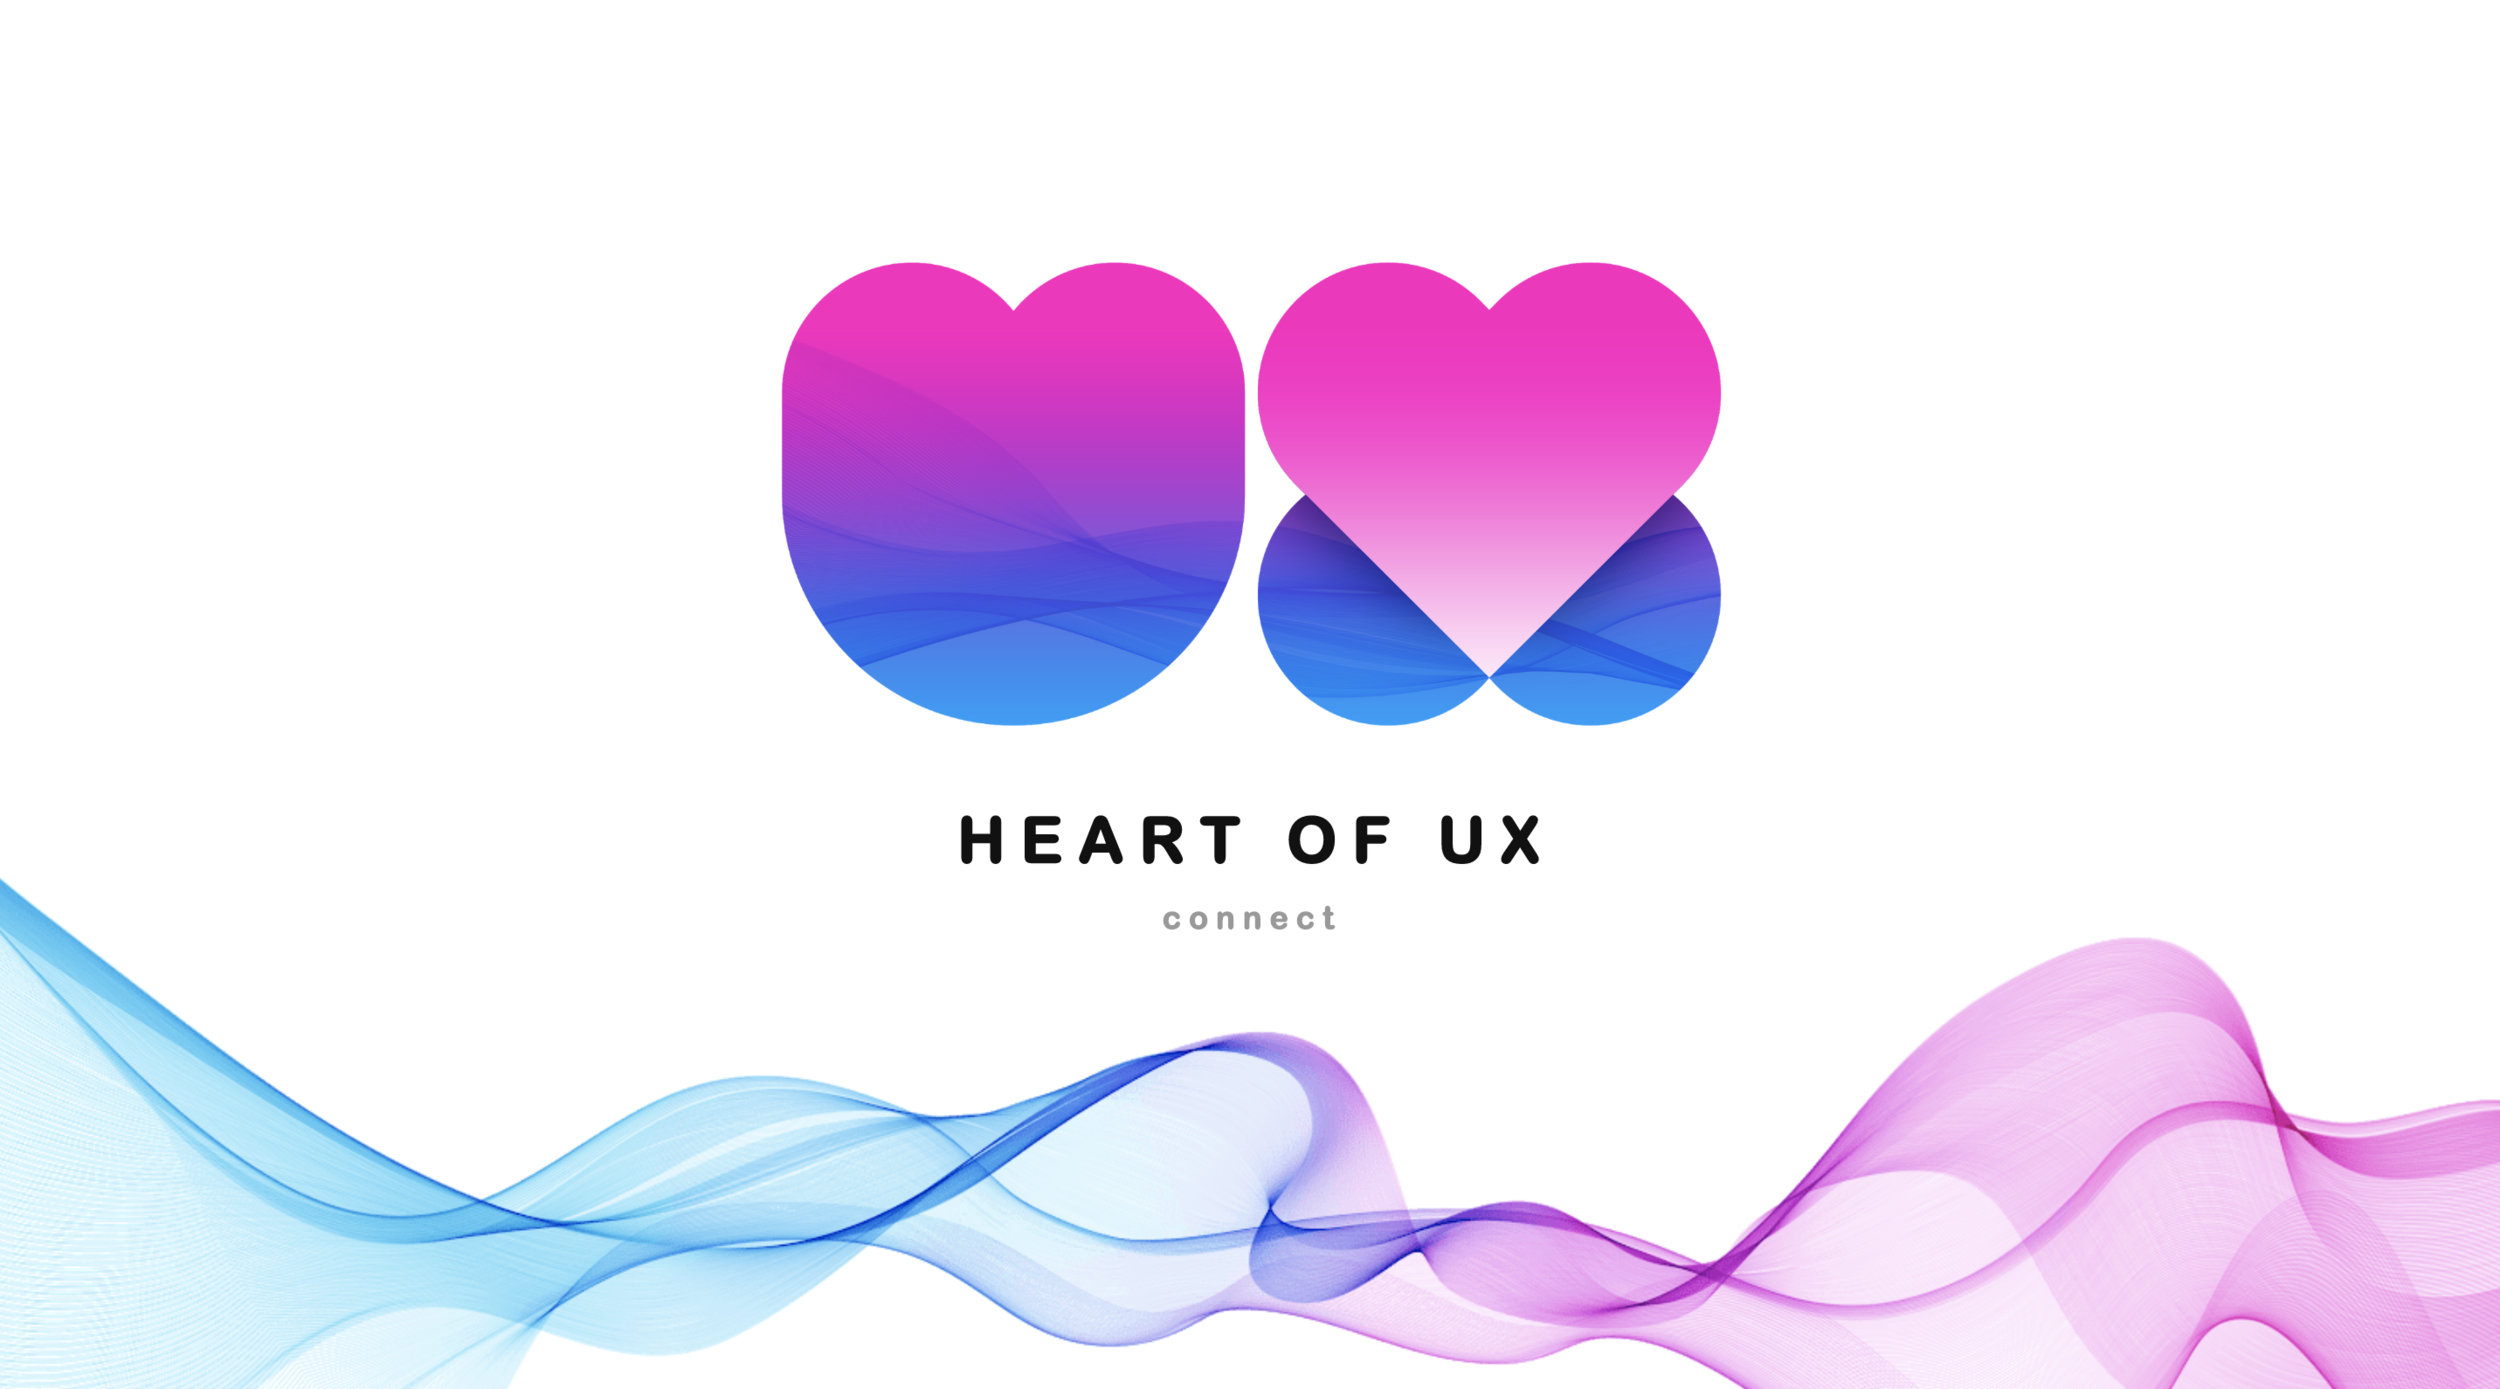 Heart of UX